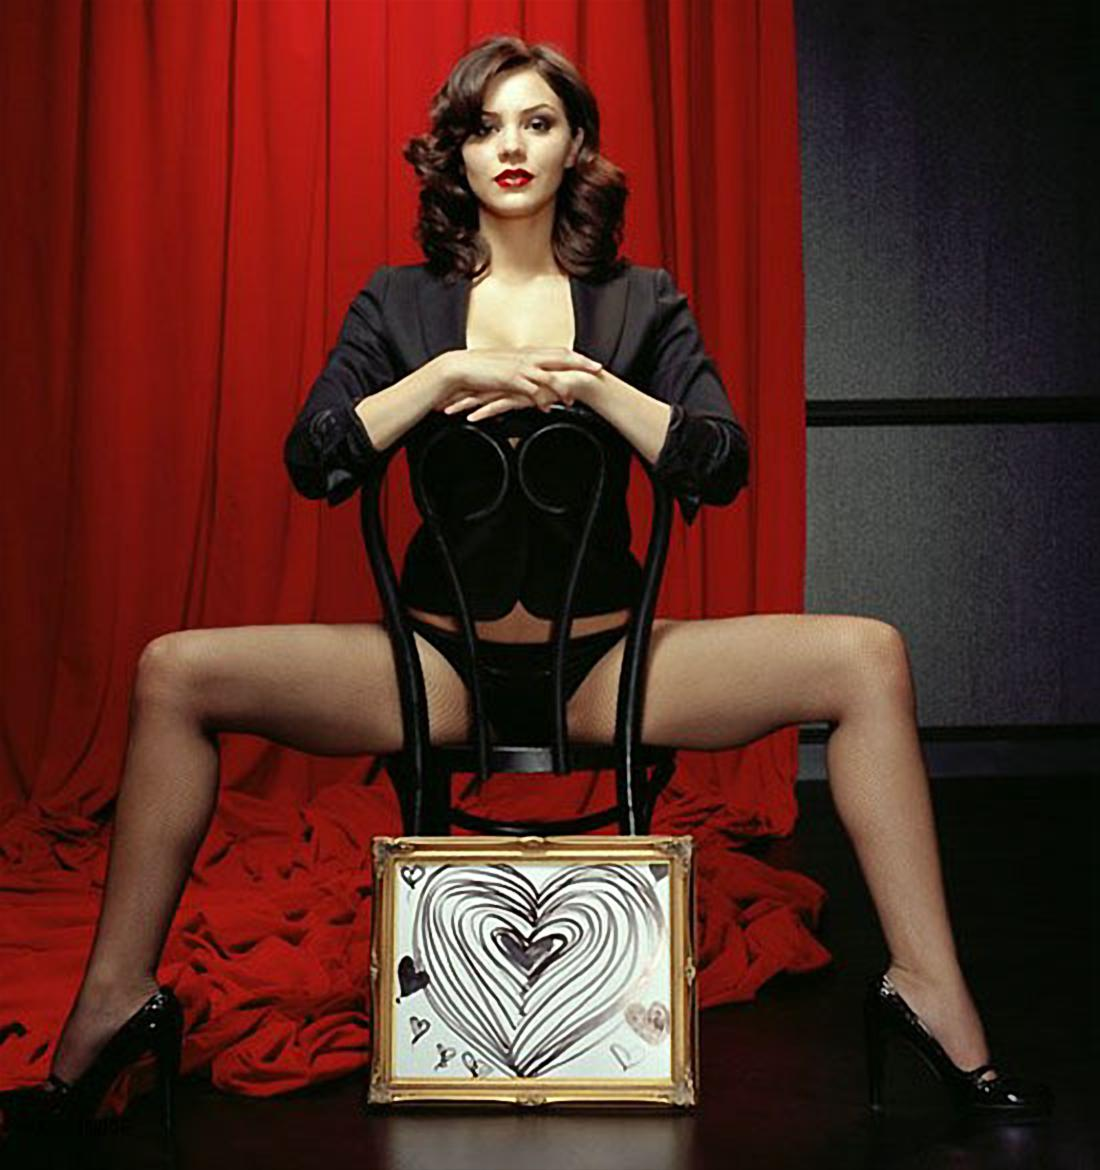 Discussion on this topic: Samara weavings sexiest leaked pictures, katharine-mcphee-sexy-photos/